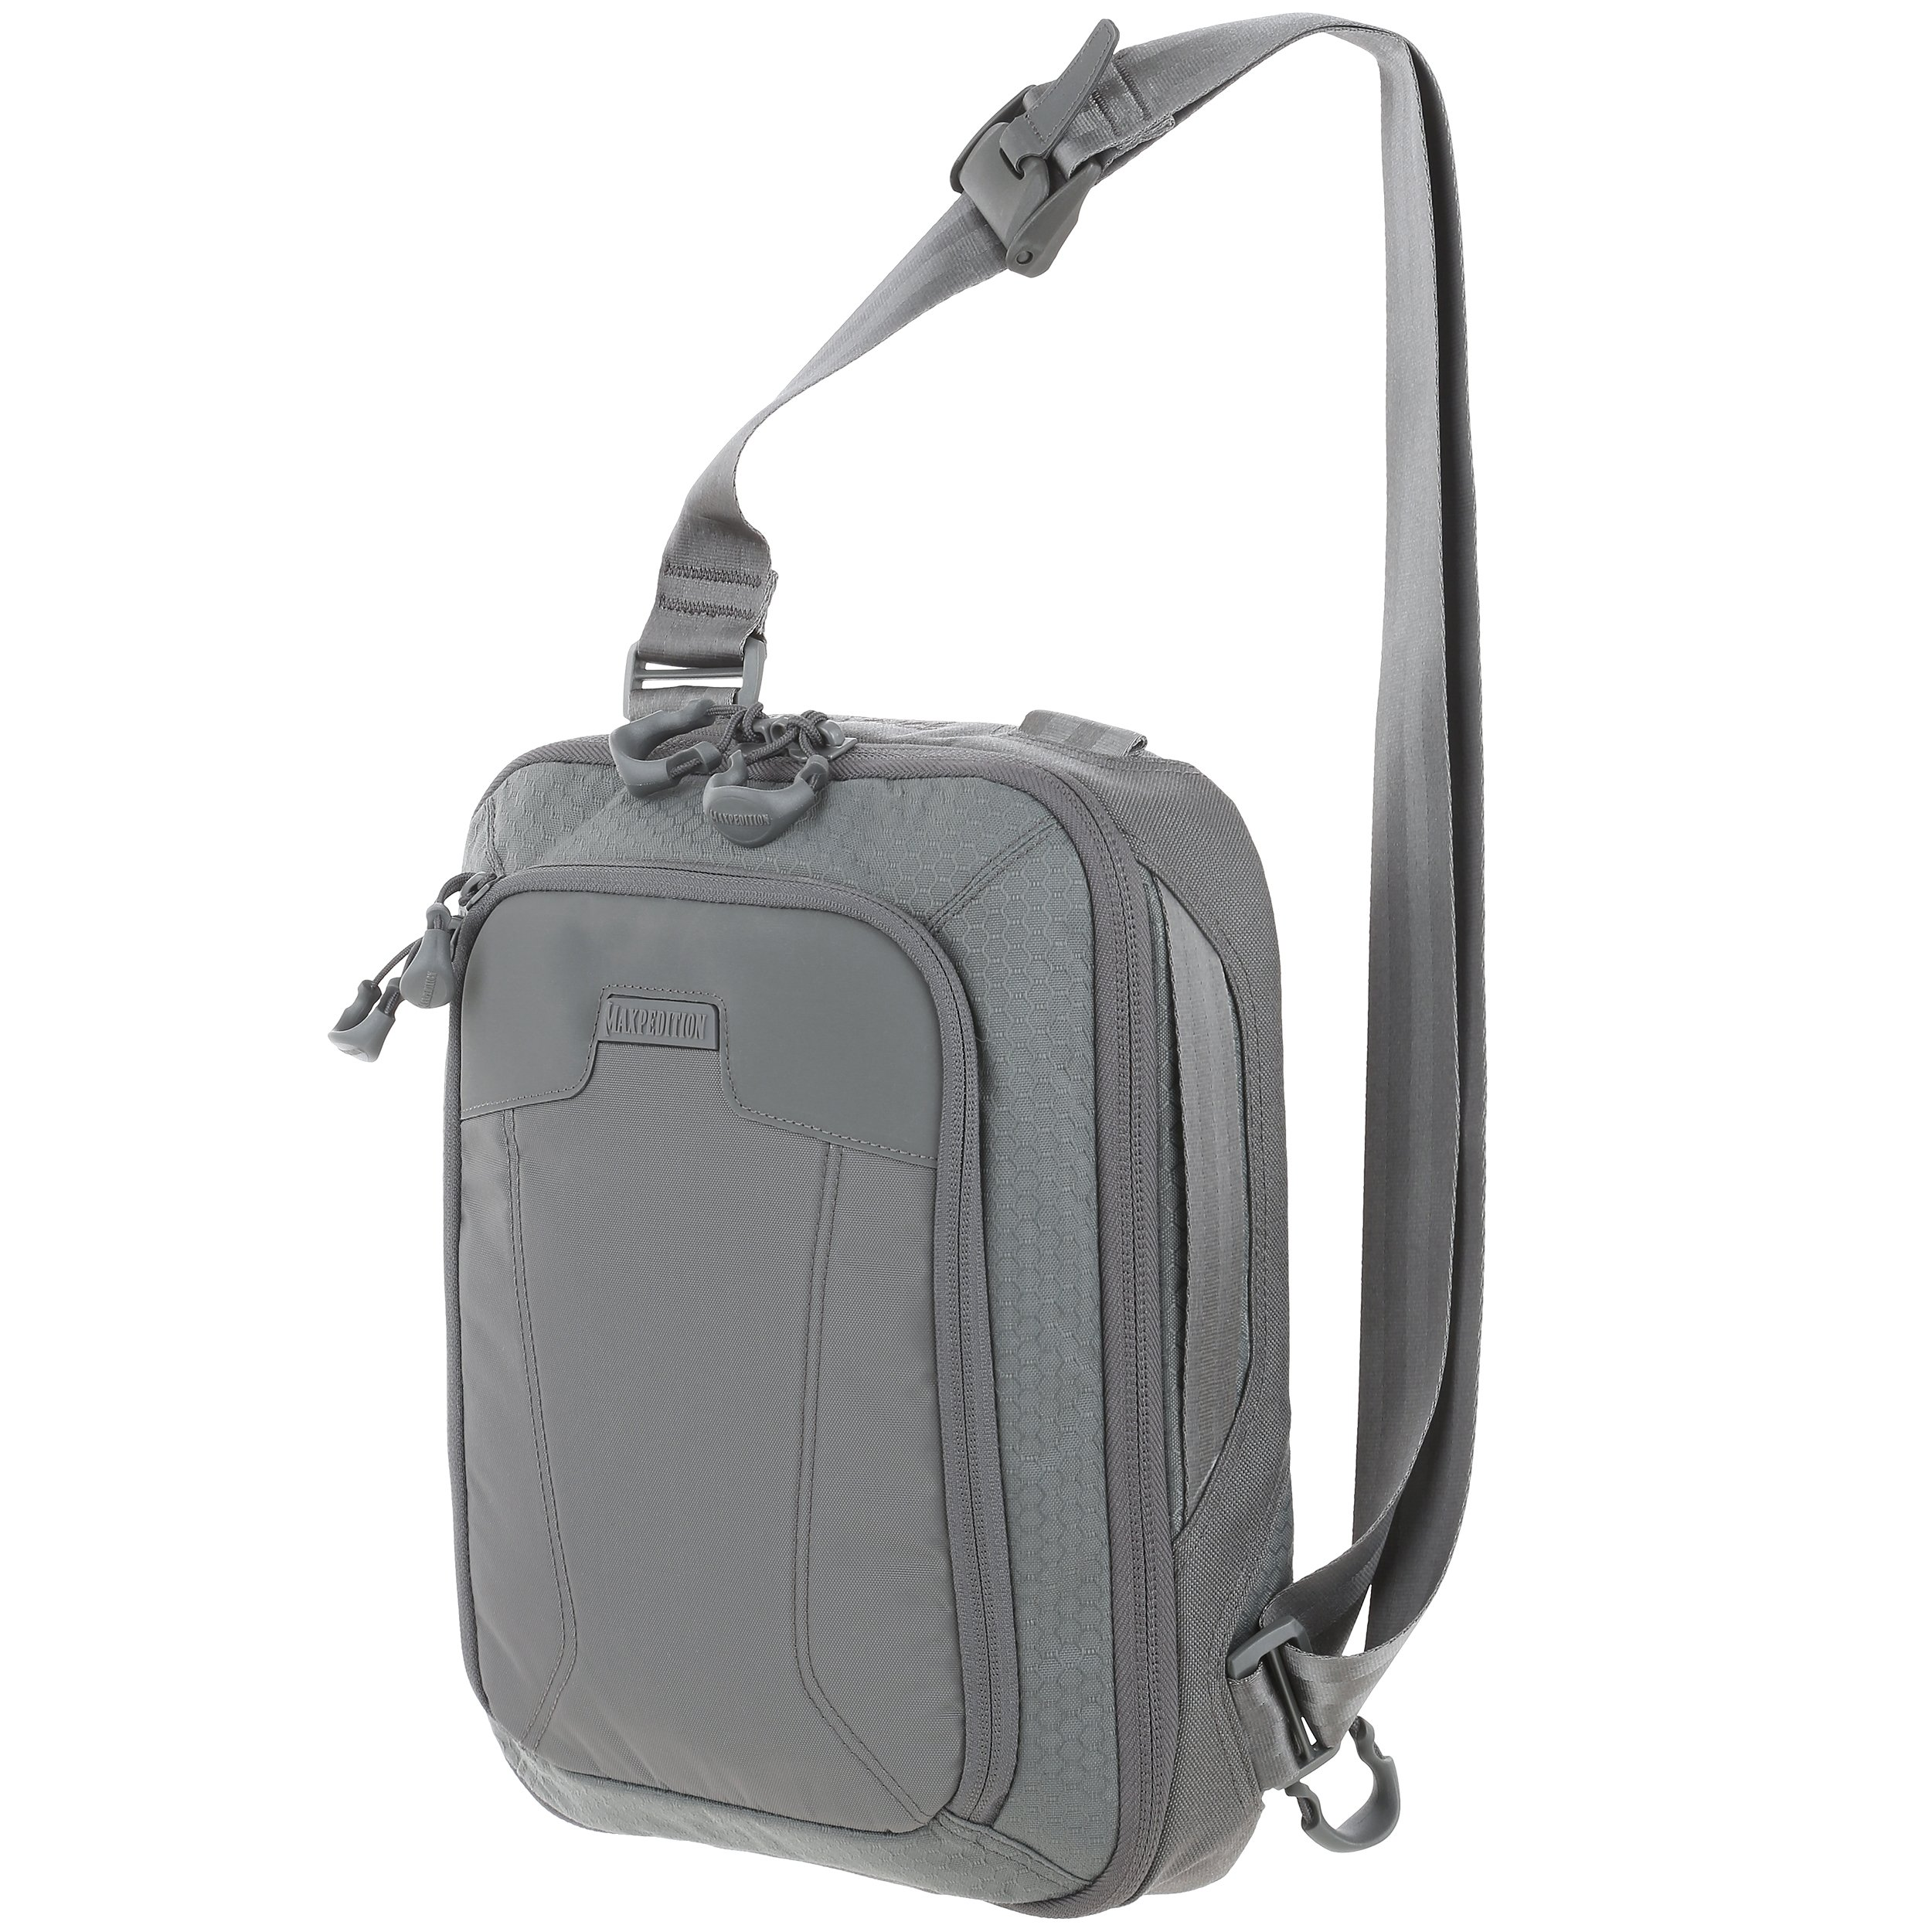 Maxpedition Mini Valence Tech Sling Pack 7L Gray by Maxpedition (Image #1)